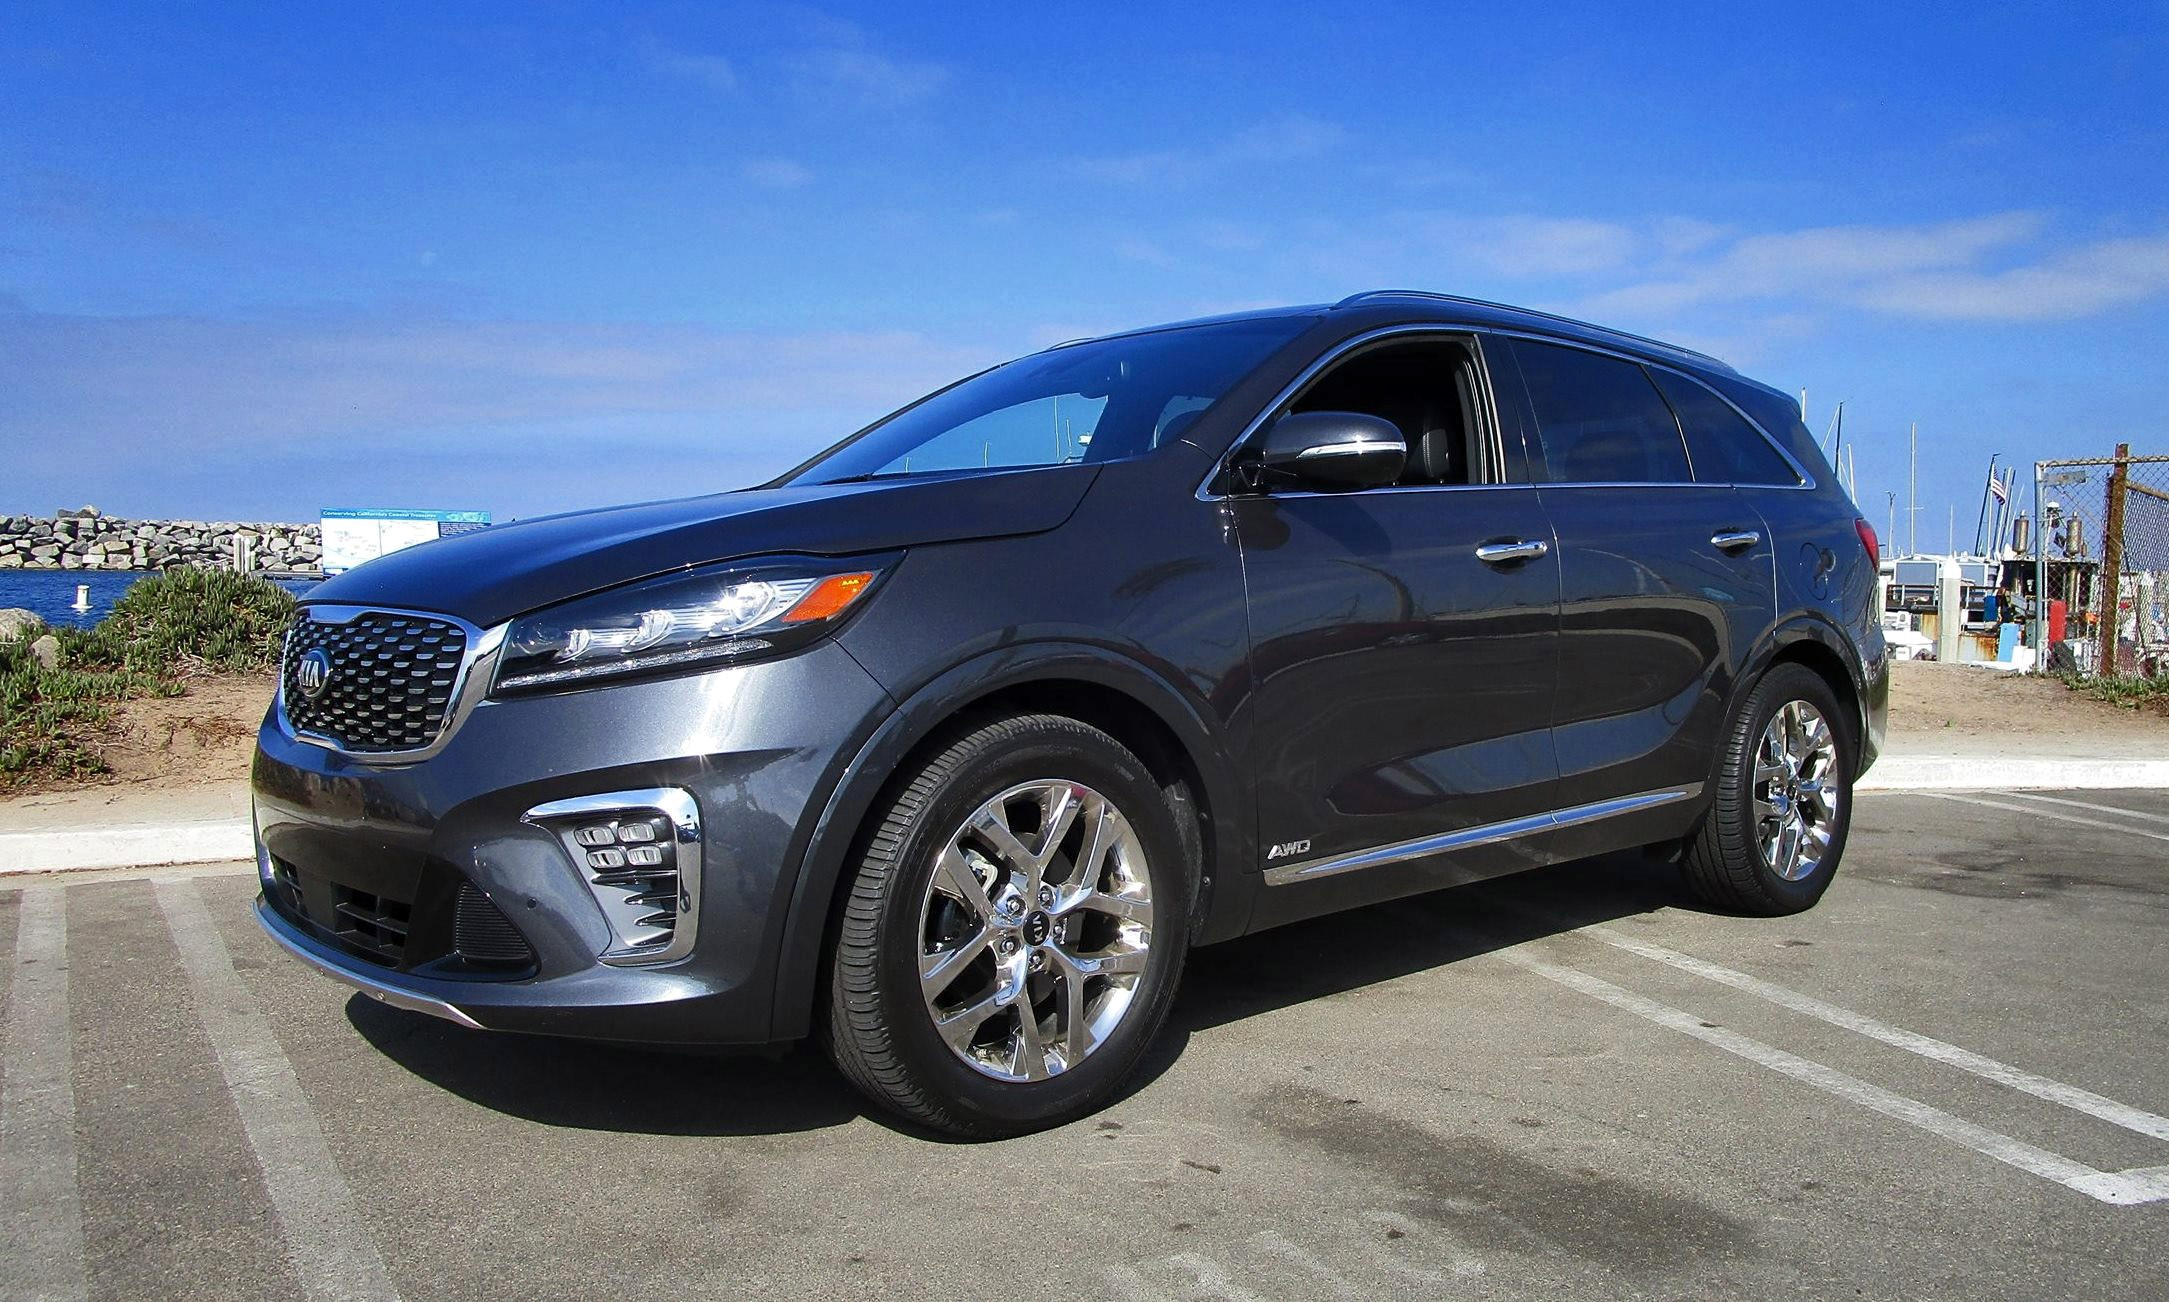 2019 kia sorento sxl awd road test review by ben lewis latest news. Black Bedroom Furniture Sets. Home Design Ideas